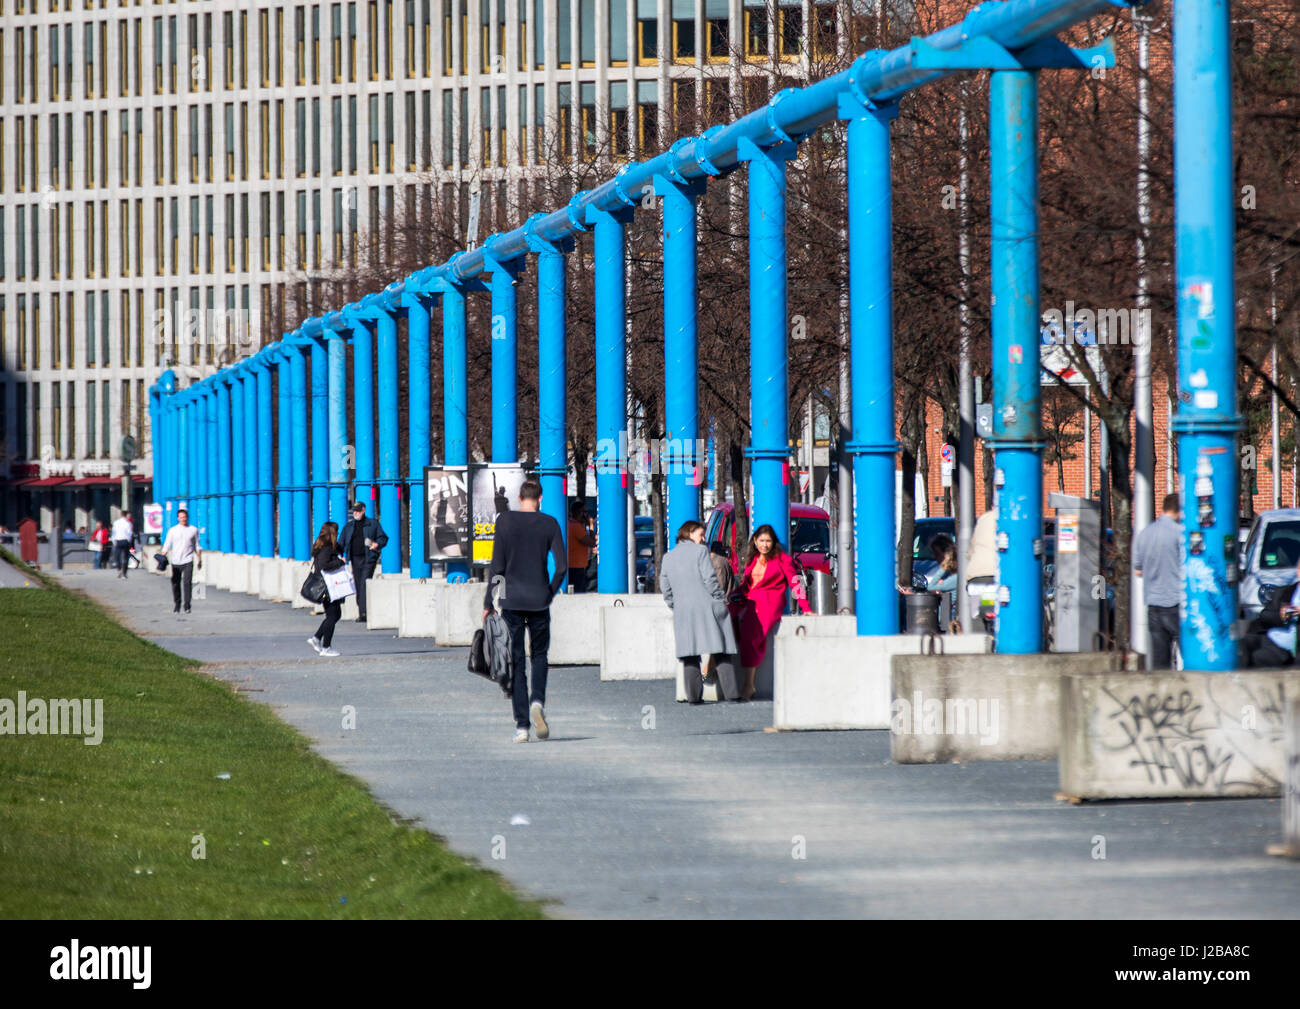 Tilla-Durieux-Park , south of Potsdamer Platz, square, in Berlin, Germany, unearthly water pipes, - Stock Image